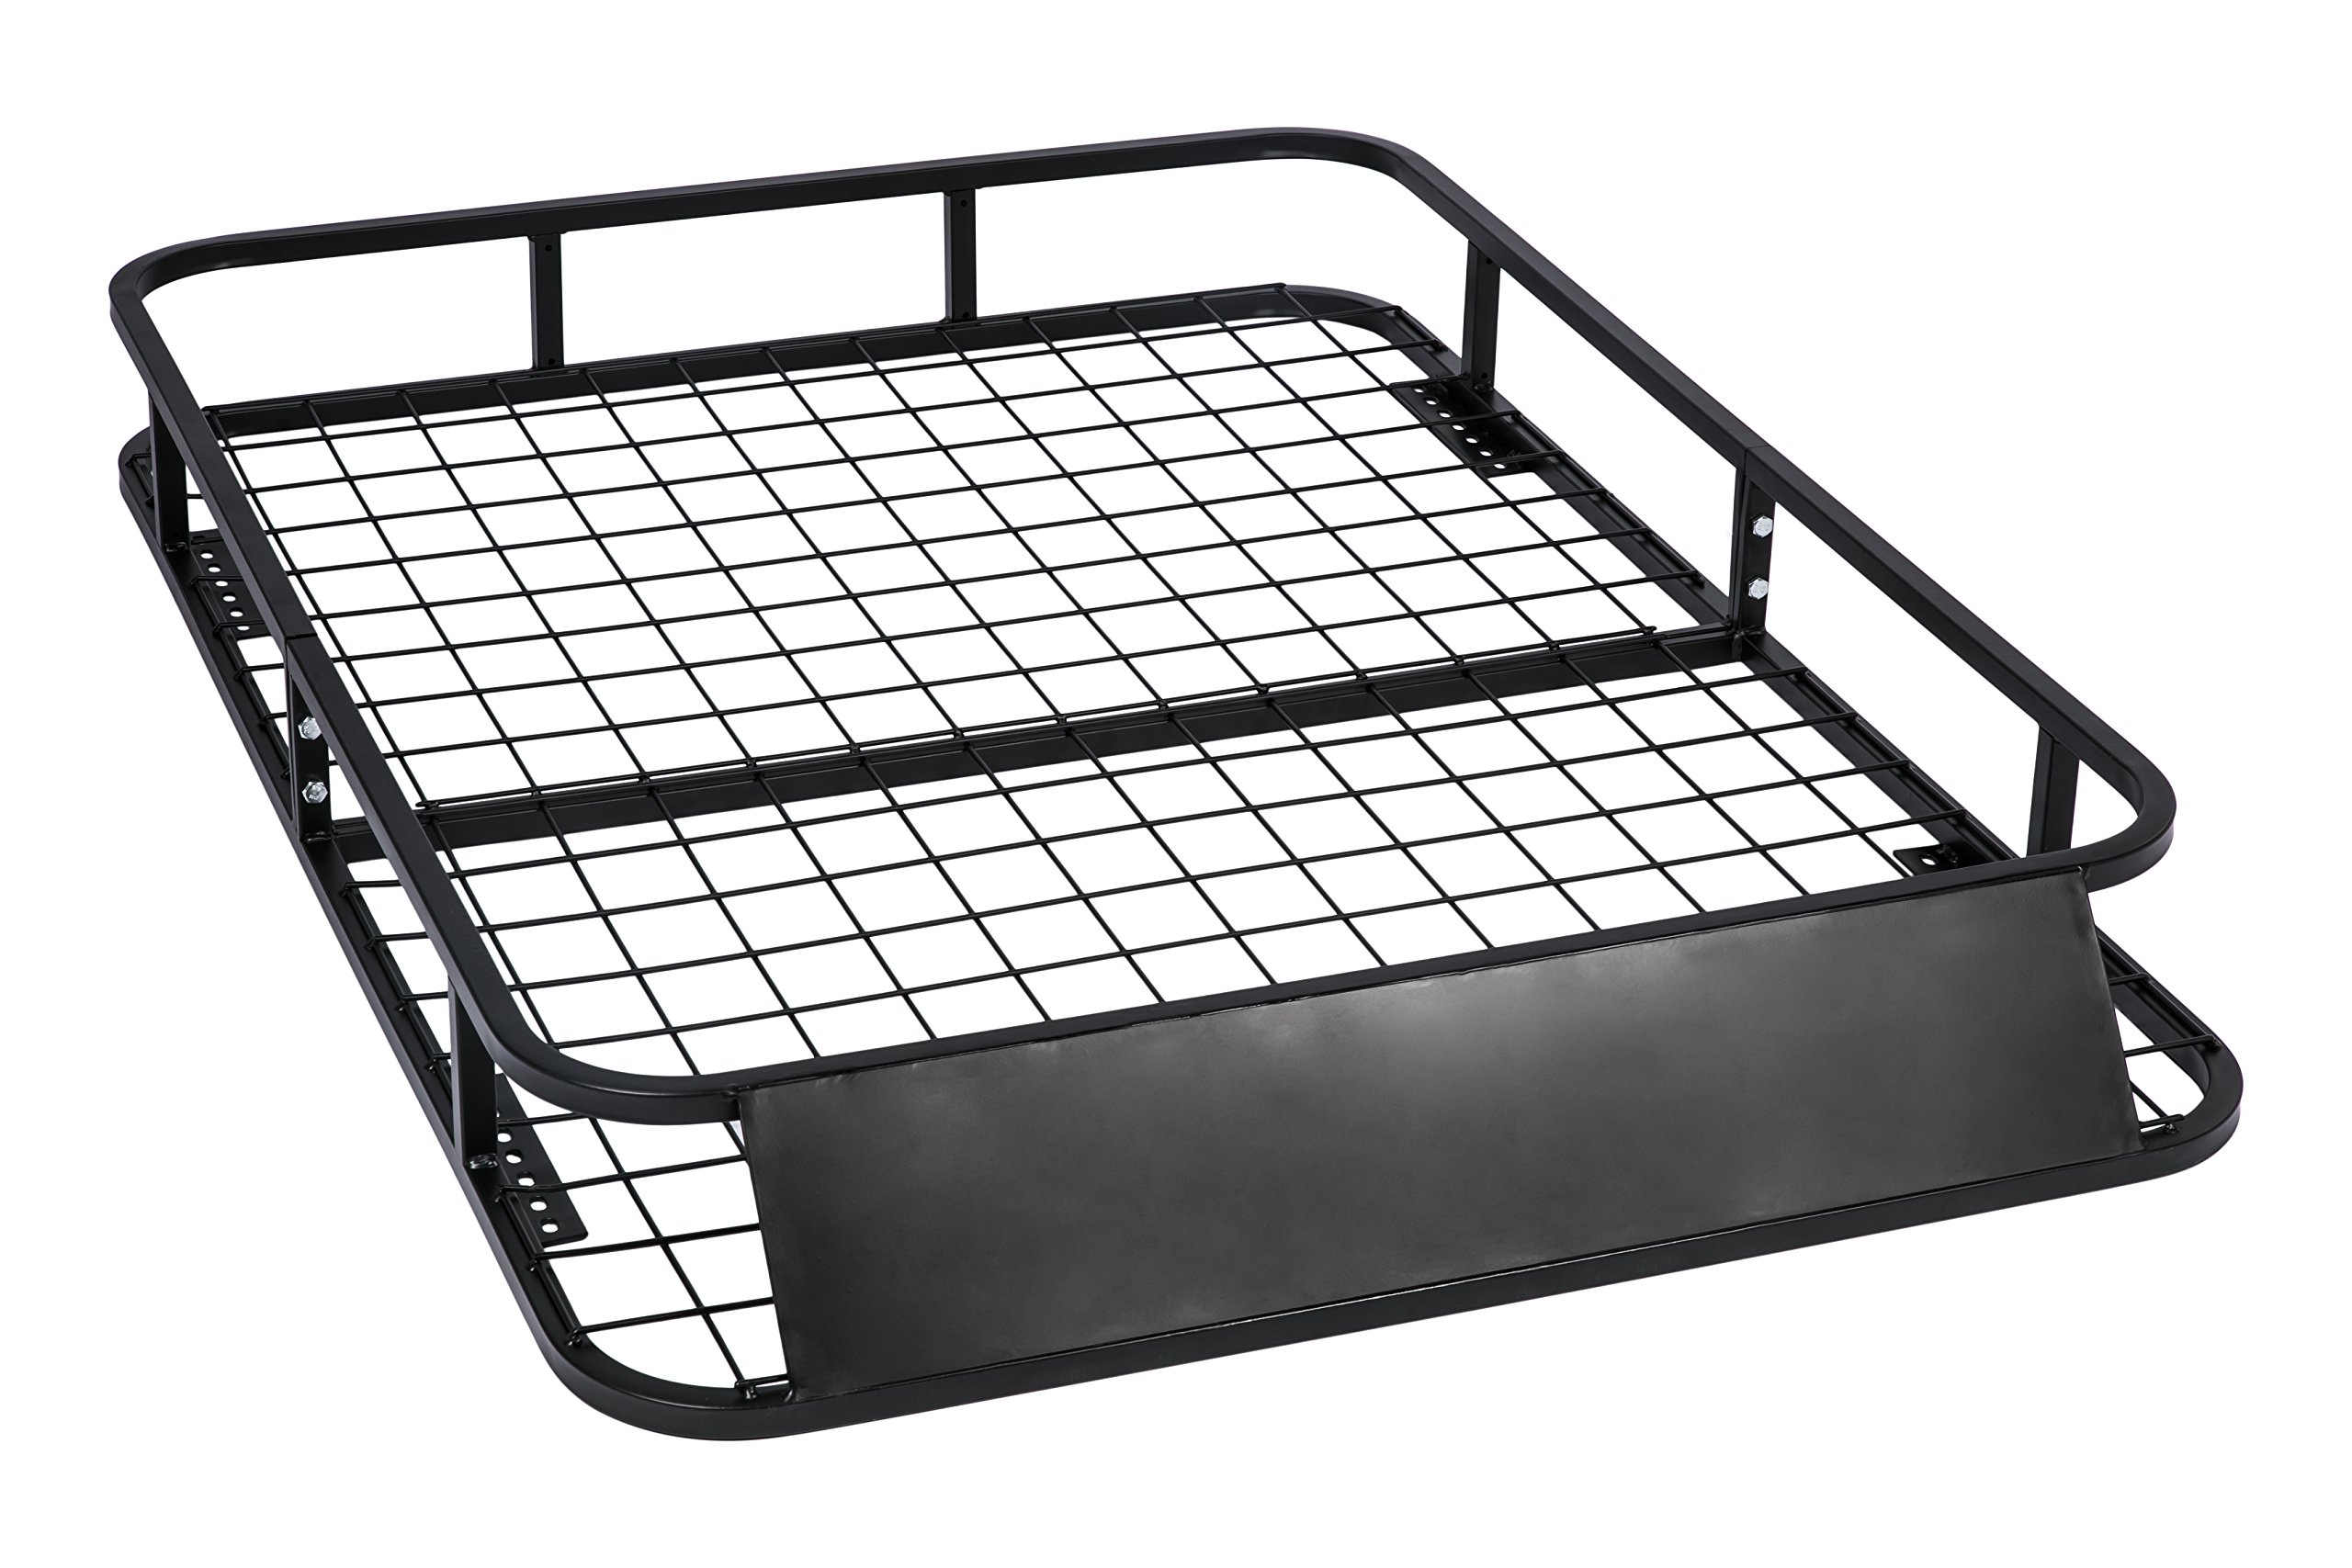 Universal Roof Rack for Truck (Cargo Car Top Luggage Carrier Basket Traveling SUV Holder) by MPH Production